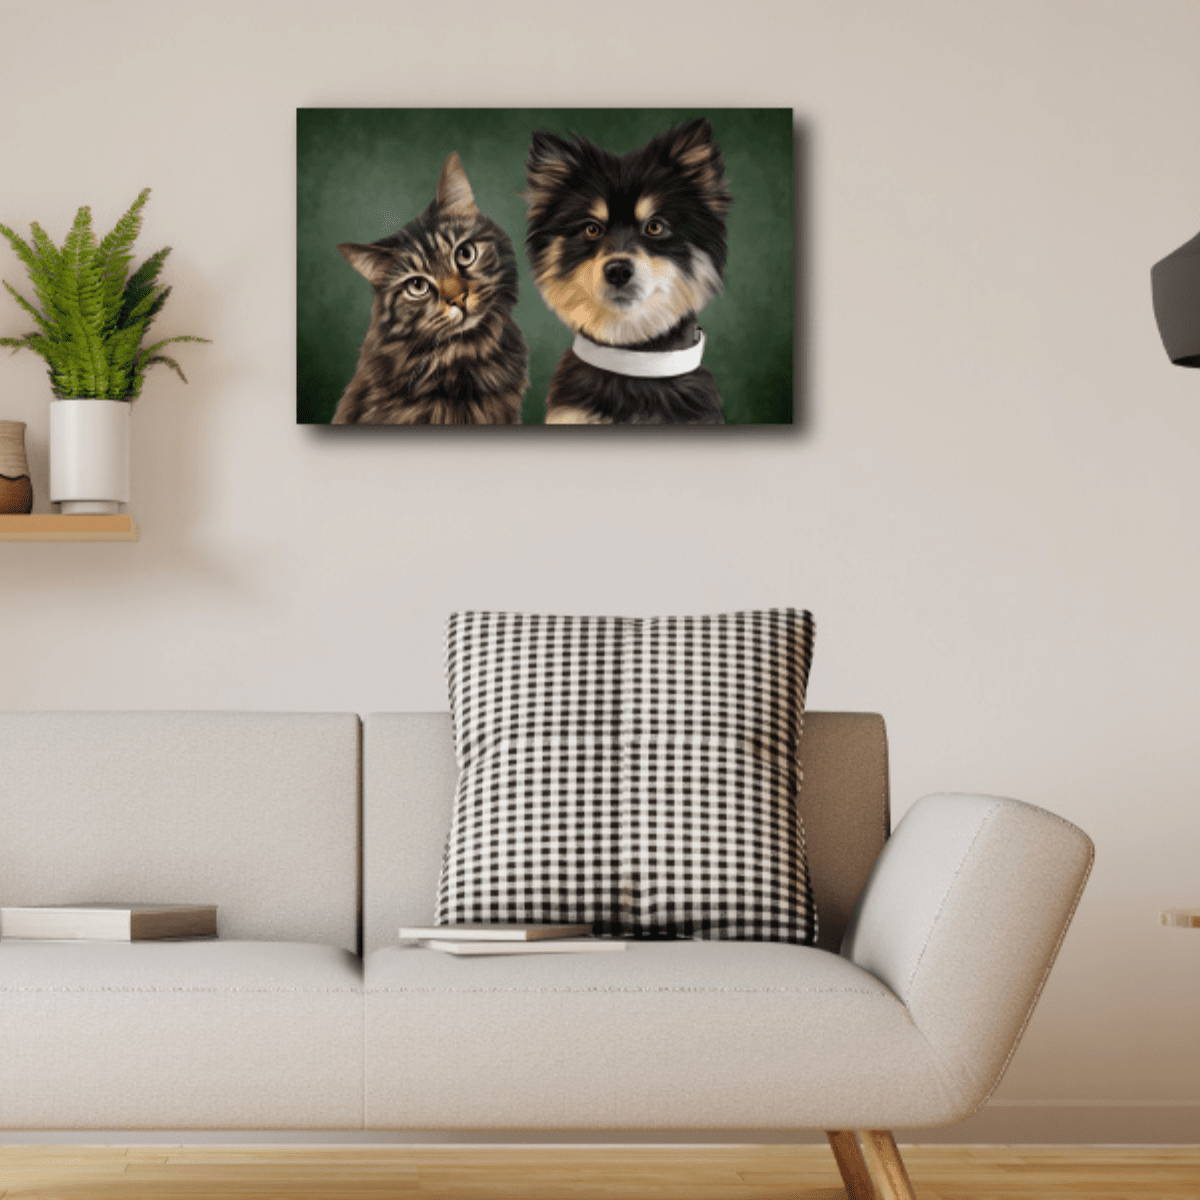 Cat and dog picture on wall of home